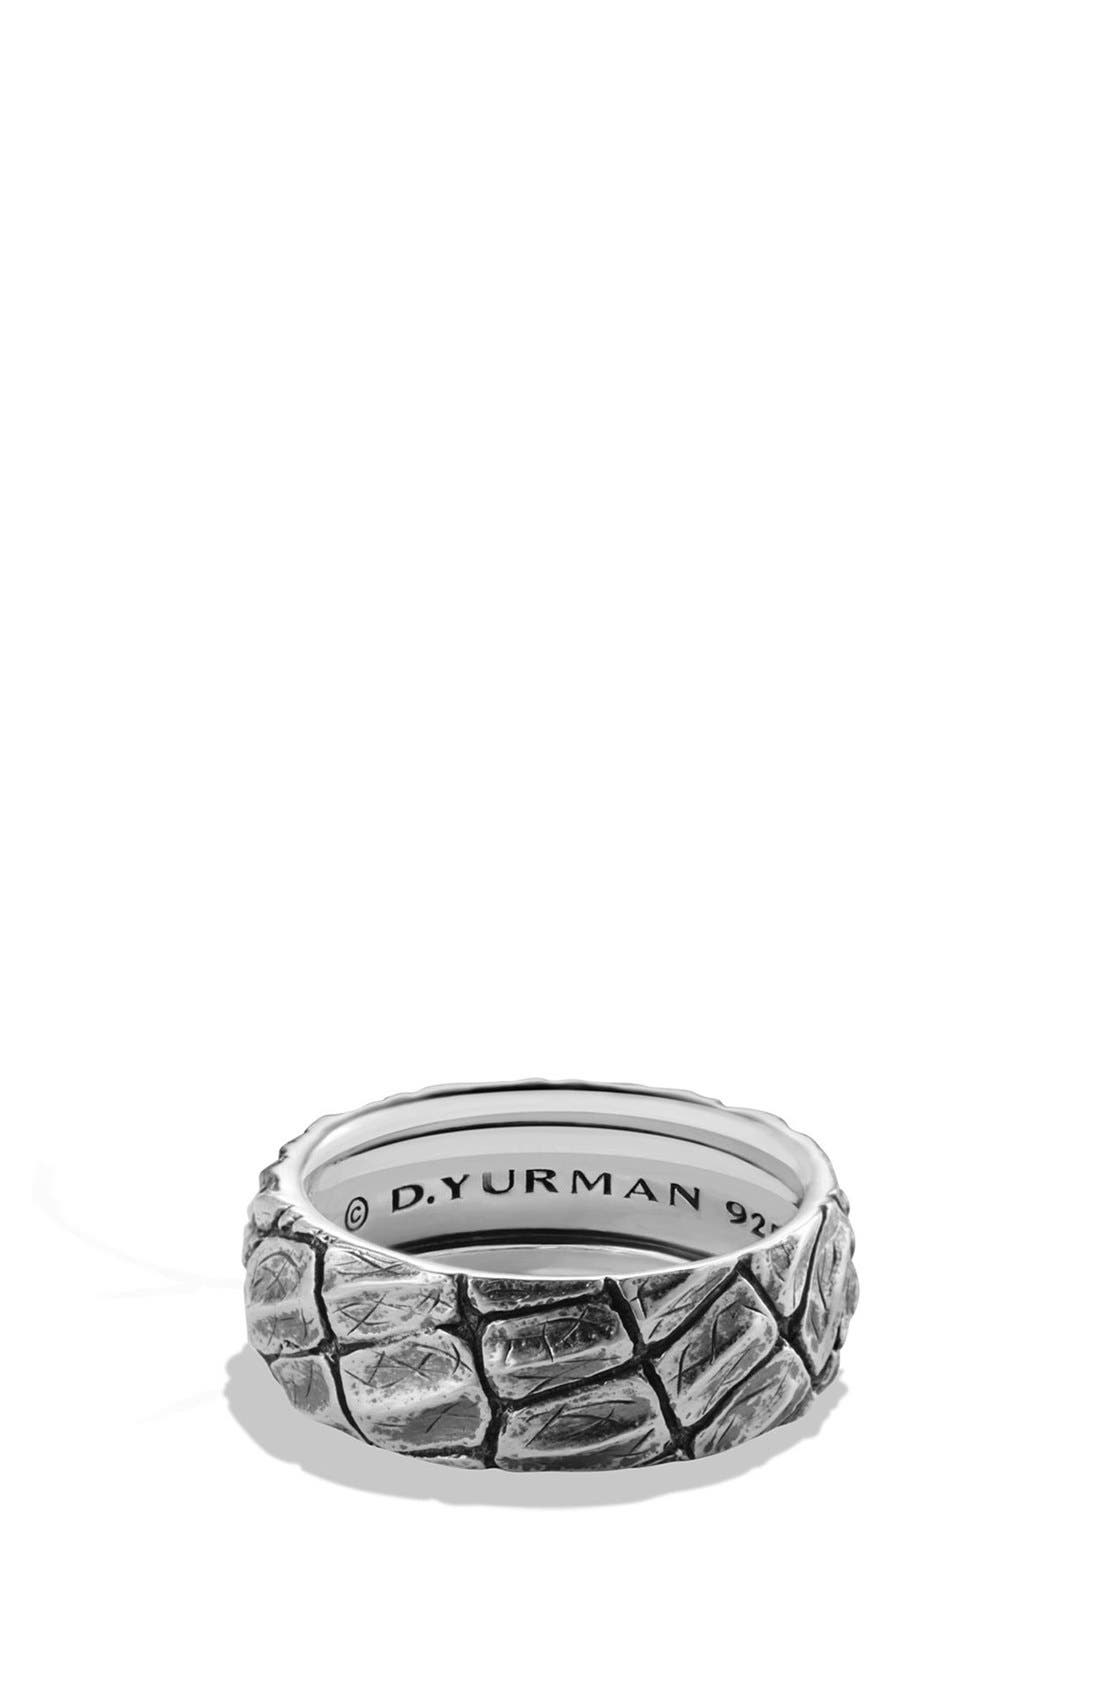 David Yurman 'Naturals' Gator Band Ring